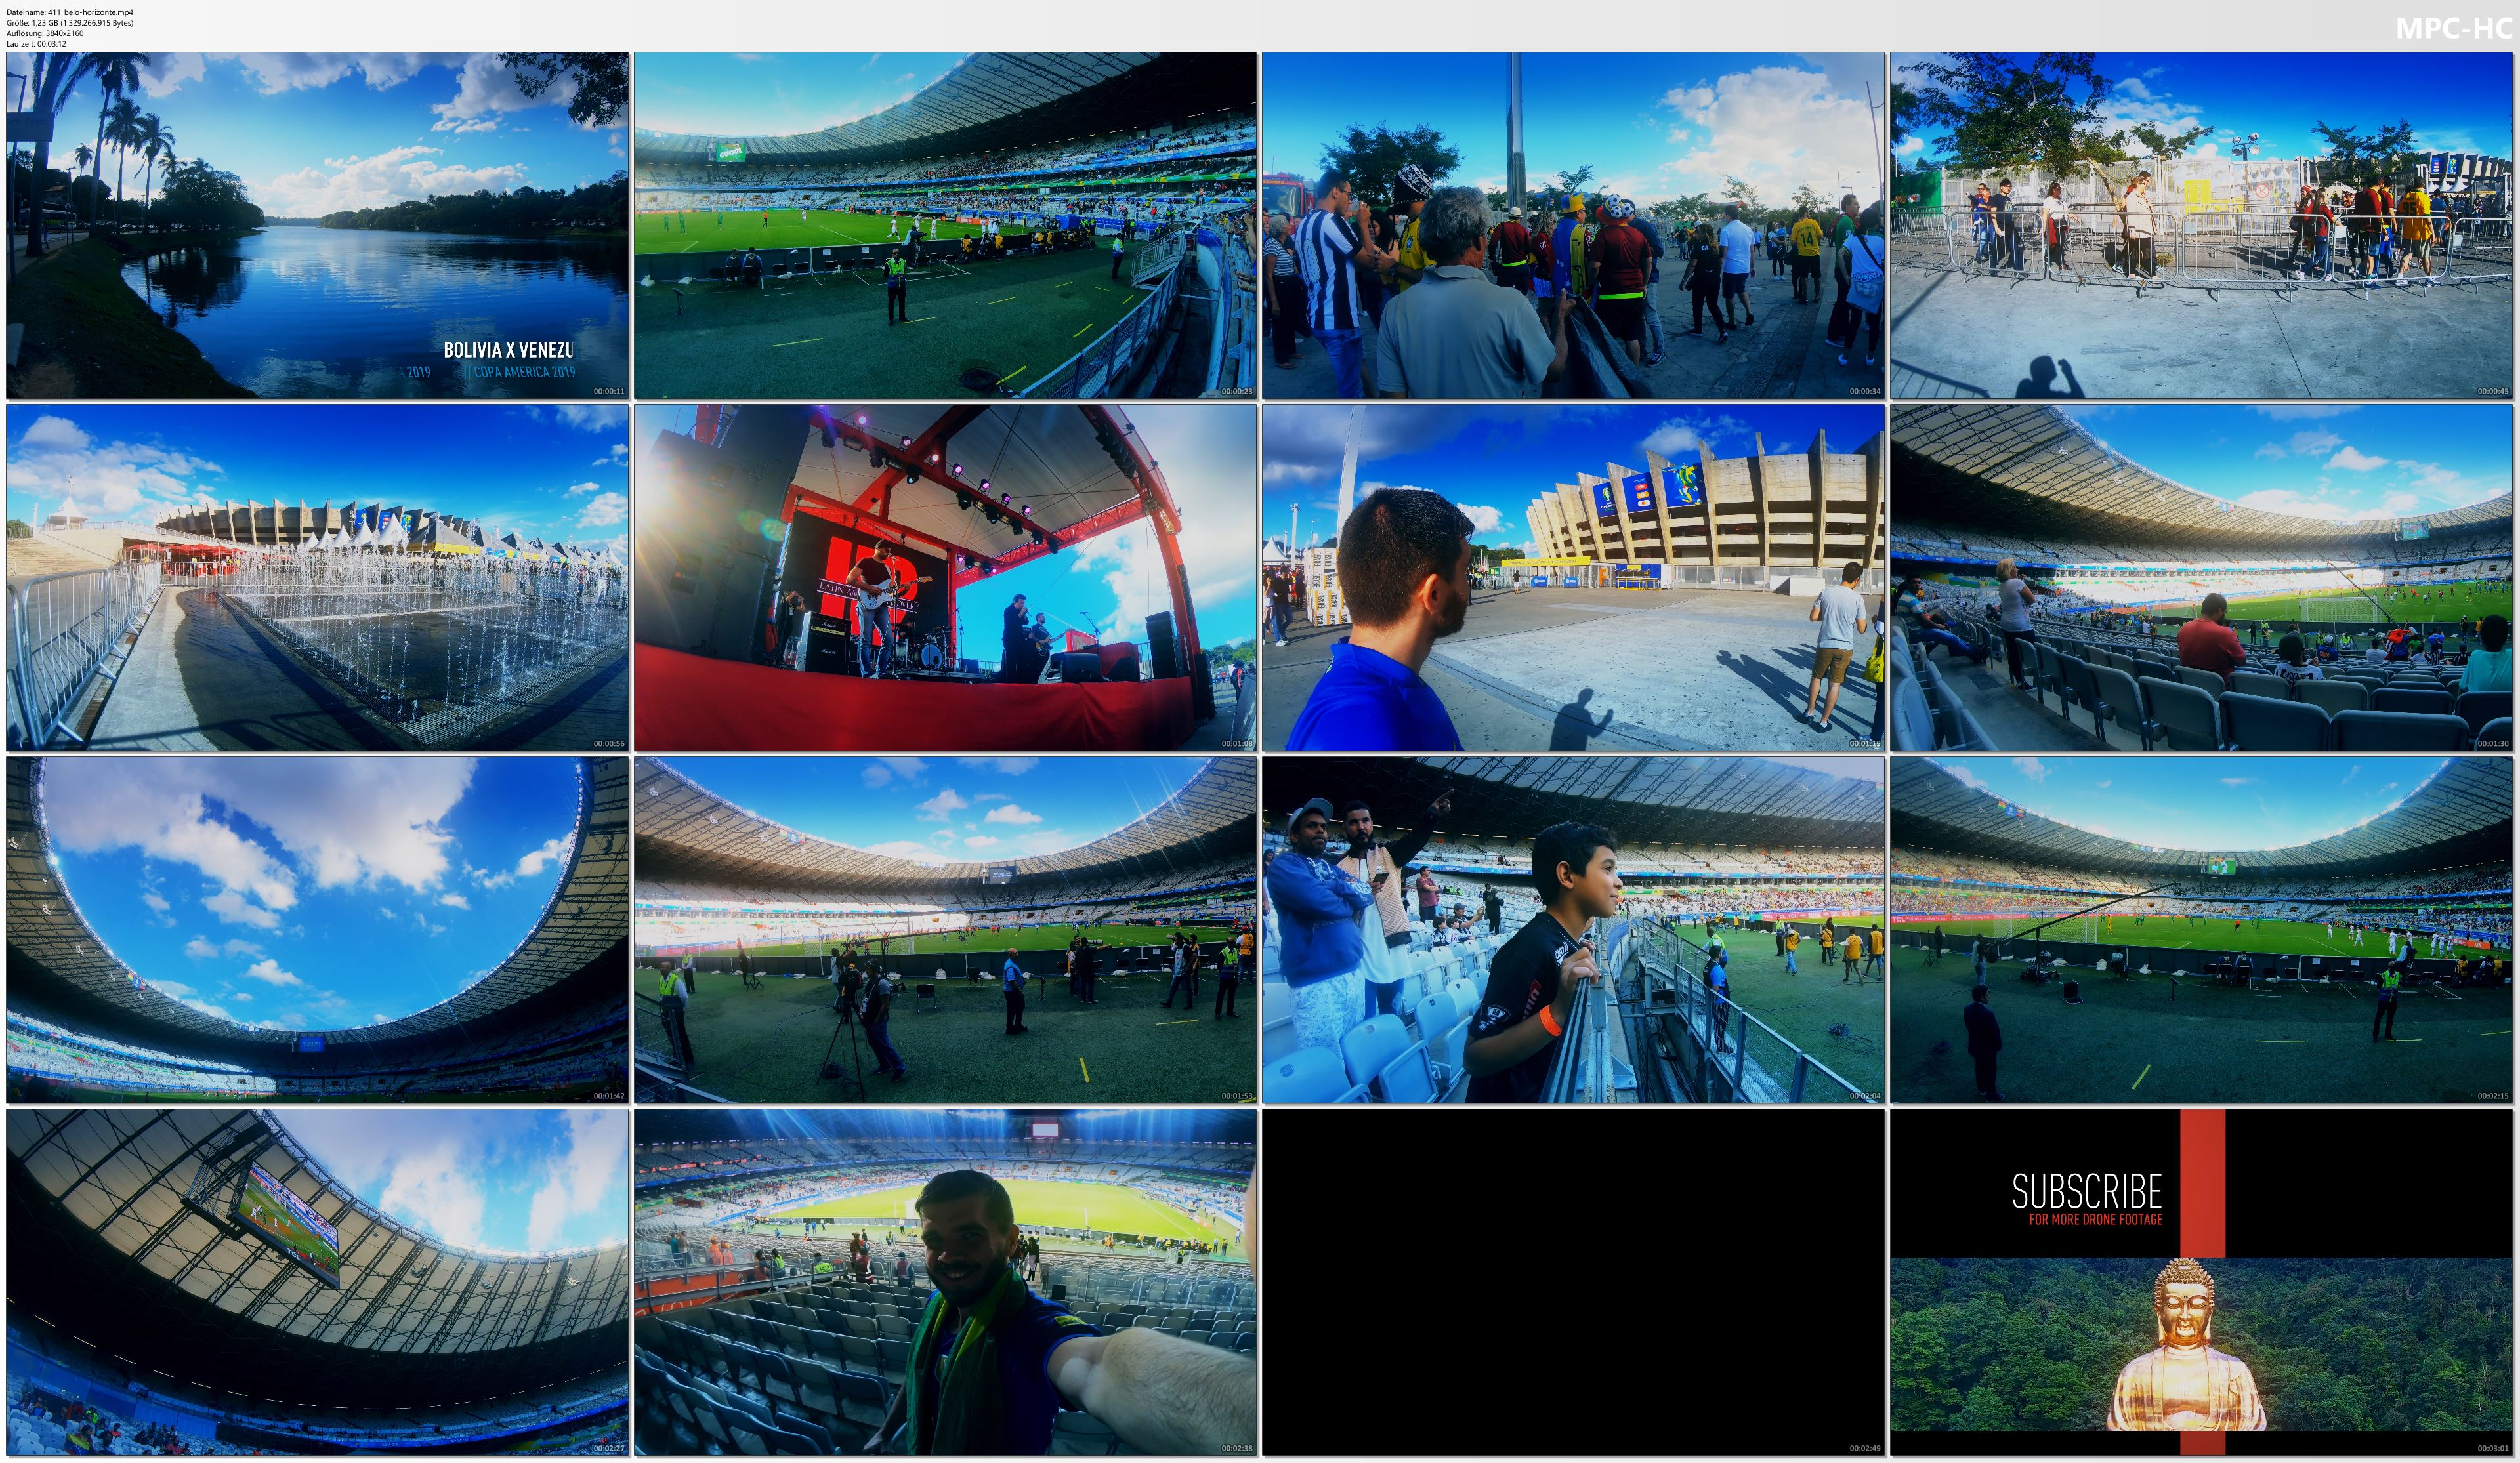 Pictures from Video 【4K】Groundhopping | Bolivia X Venezuela [1 x 3] 2019-06-22 | COPA AMERICA | Mineirao, Belo Horizonte